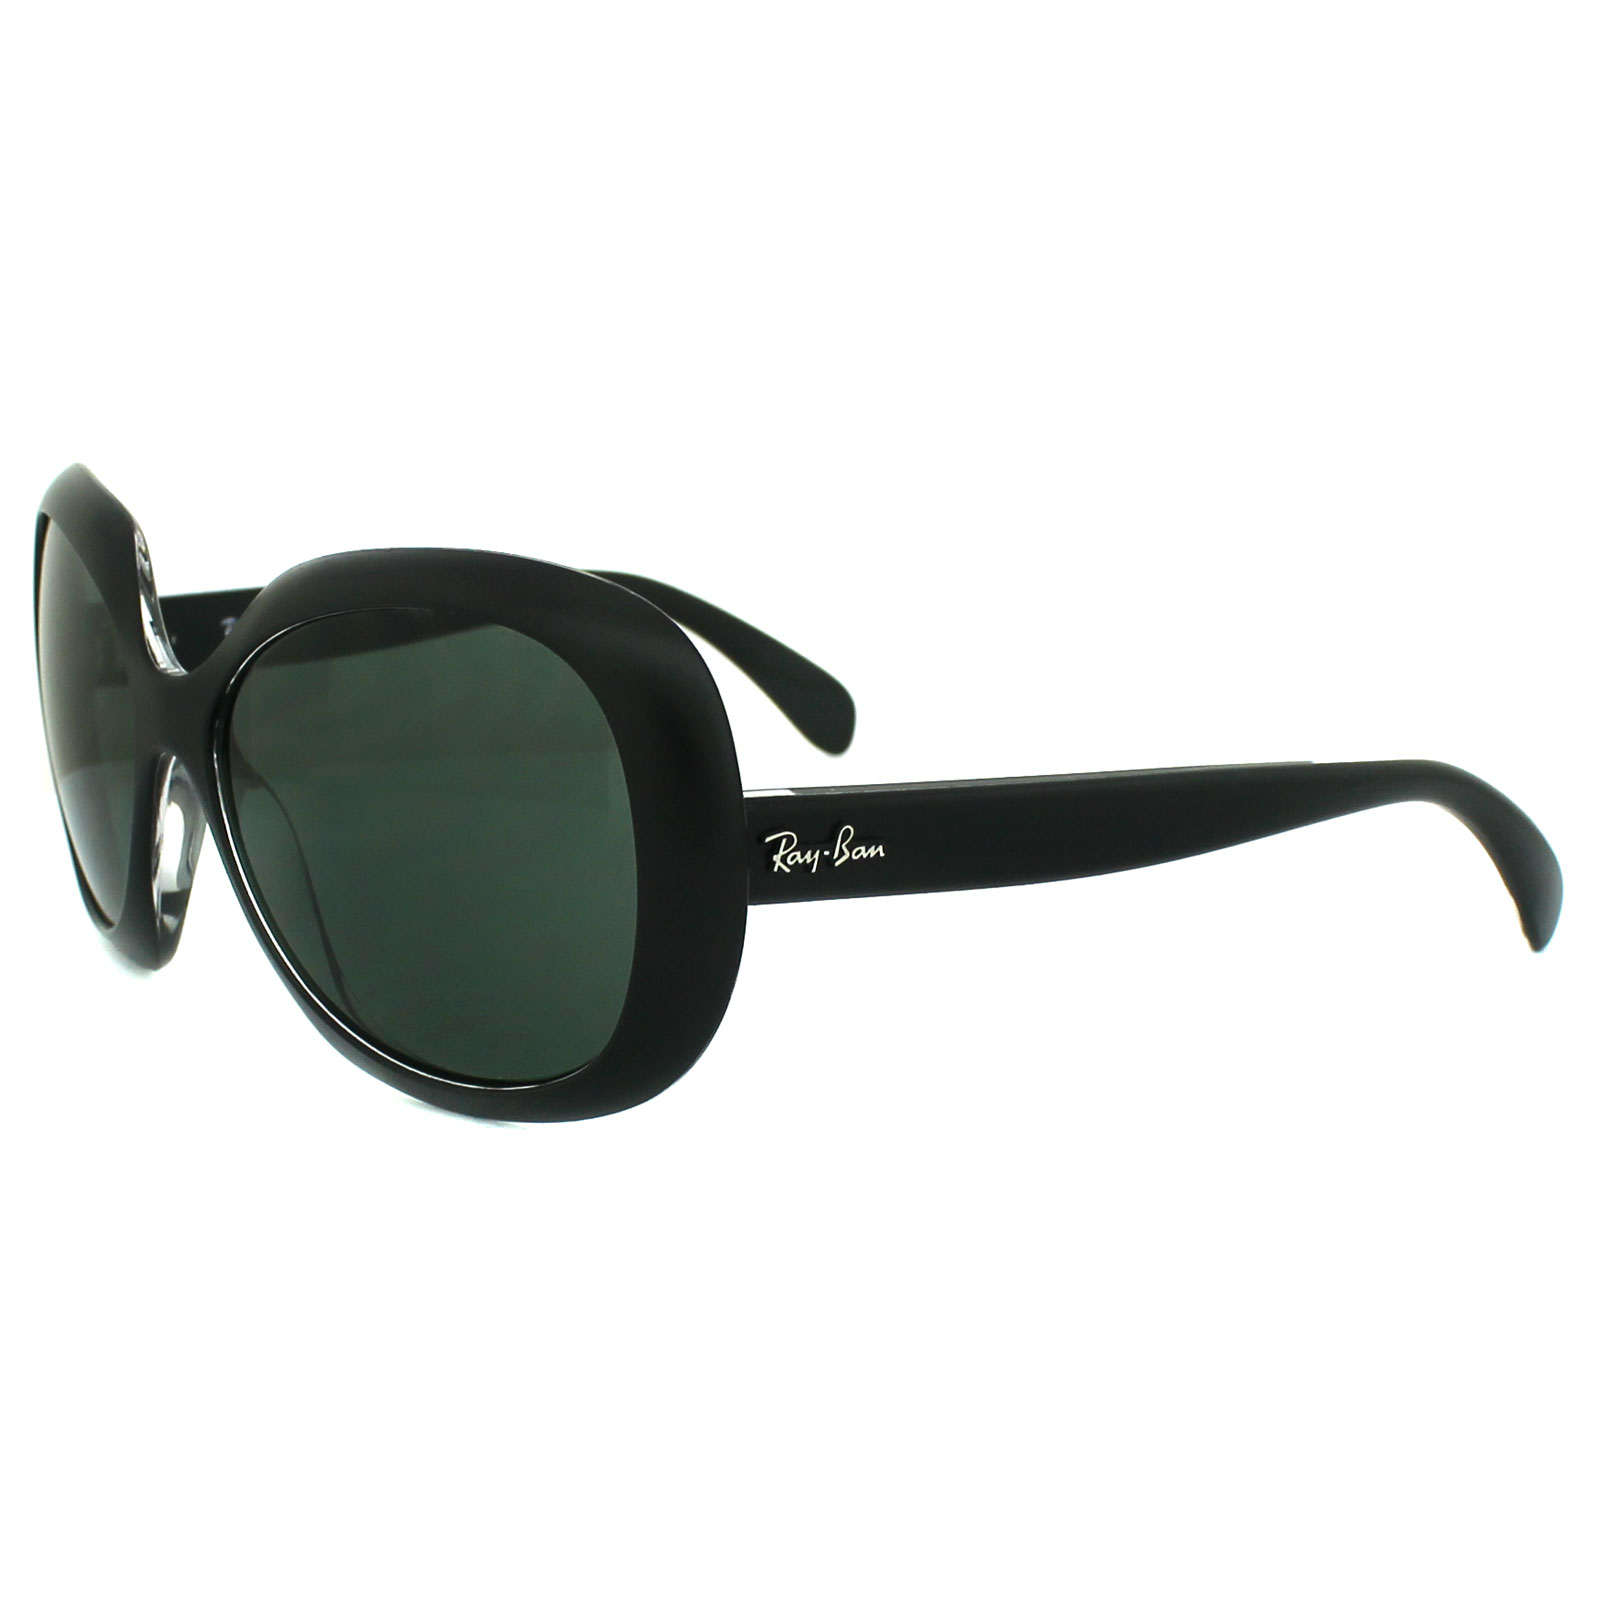 Black On 610071 Transparent Details Green Ban Top Ray Sunglasses Matt About 4208 2EeW9YHID